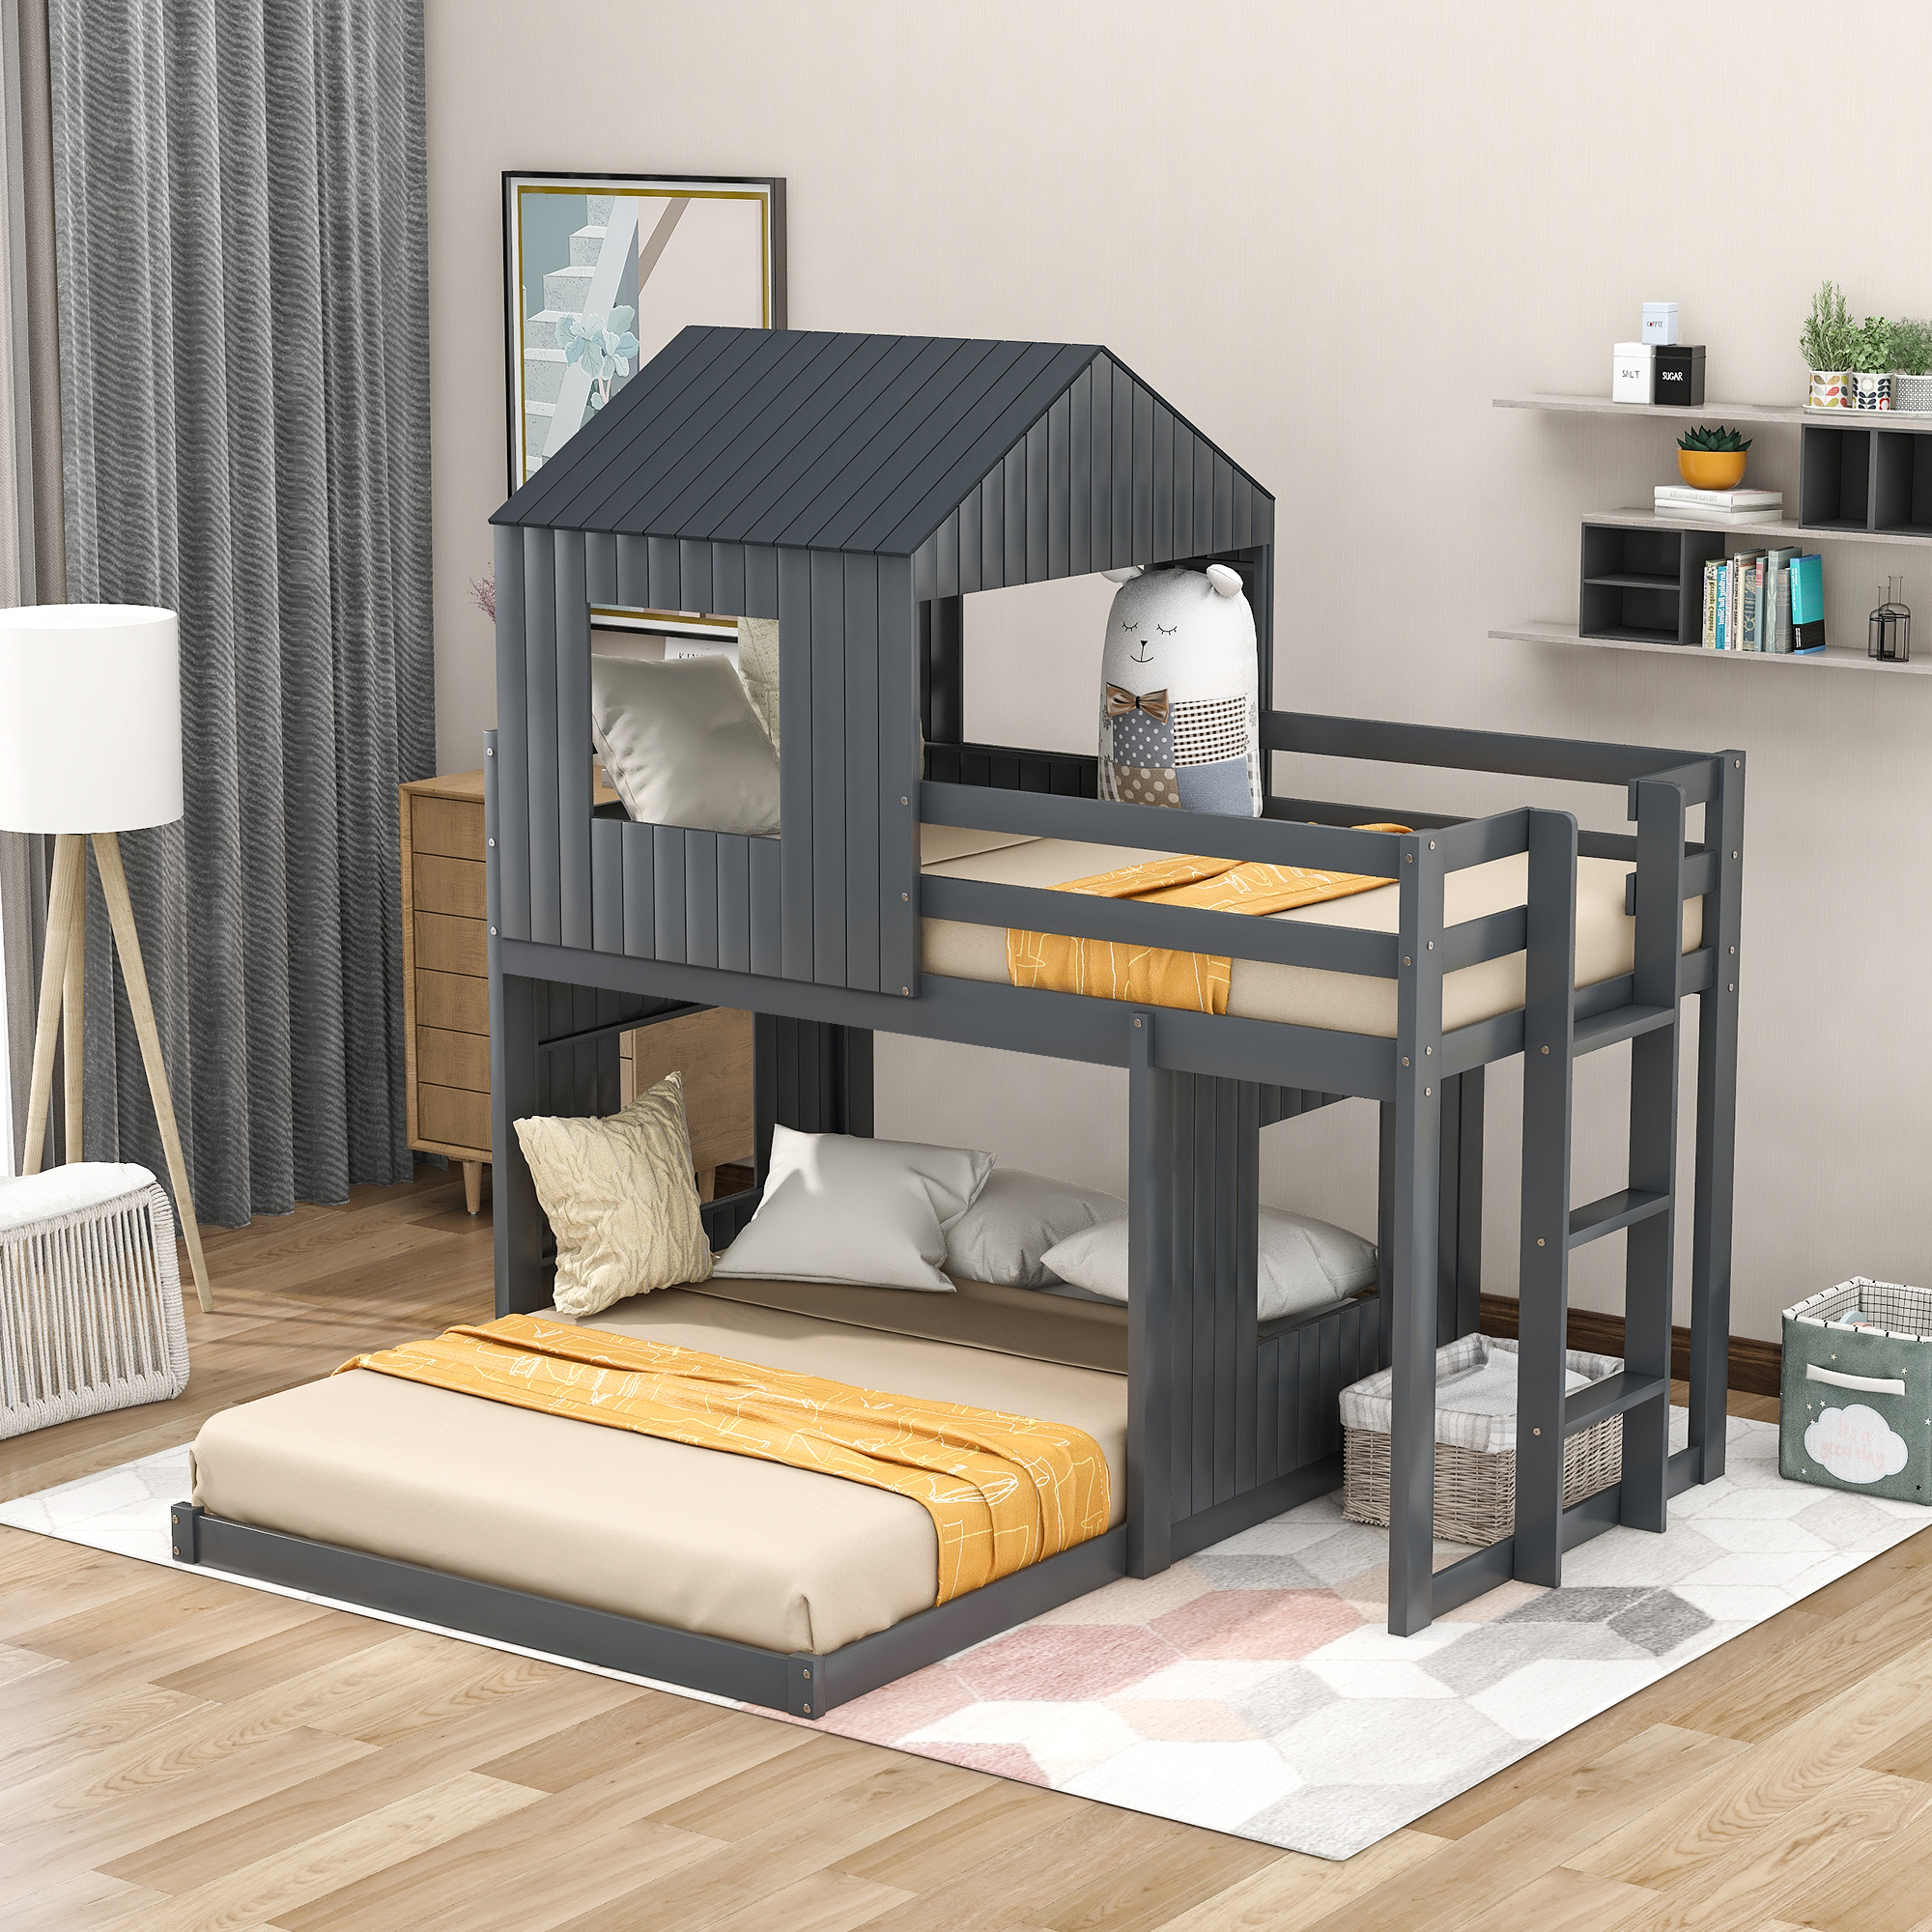 Wooden Twin Over Full Bunk Bed Loft Bed With Farmhouse Ladder And Guardrails For Kids Toddlers Boys Girls Gray Walmart Com Walmart Com